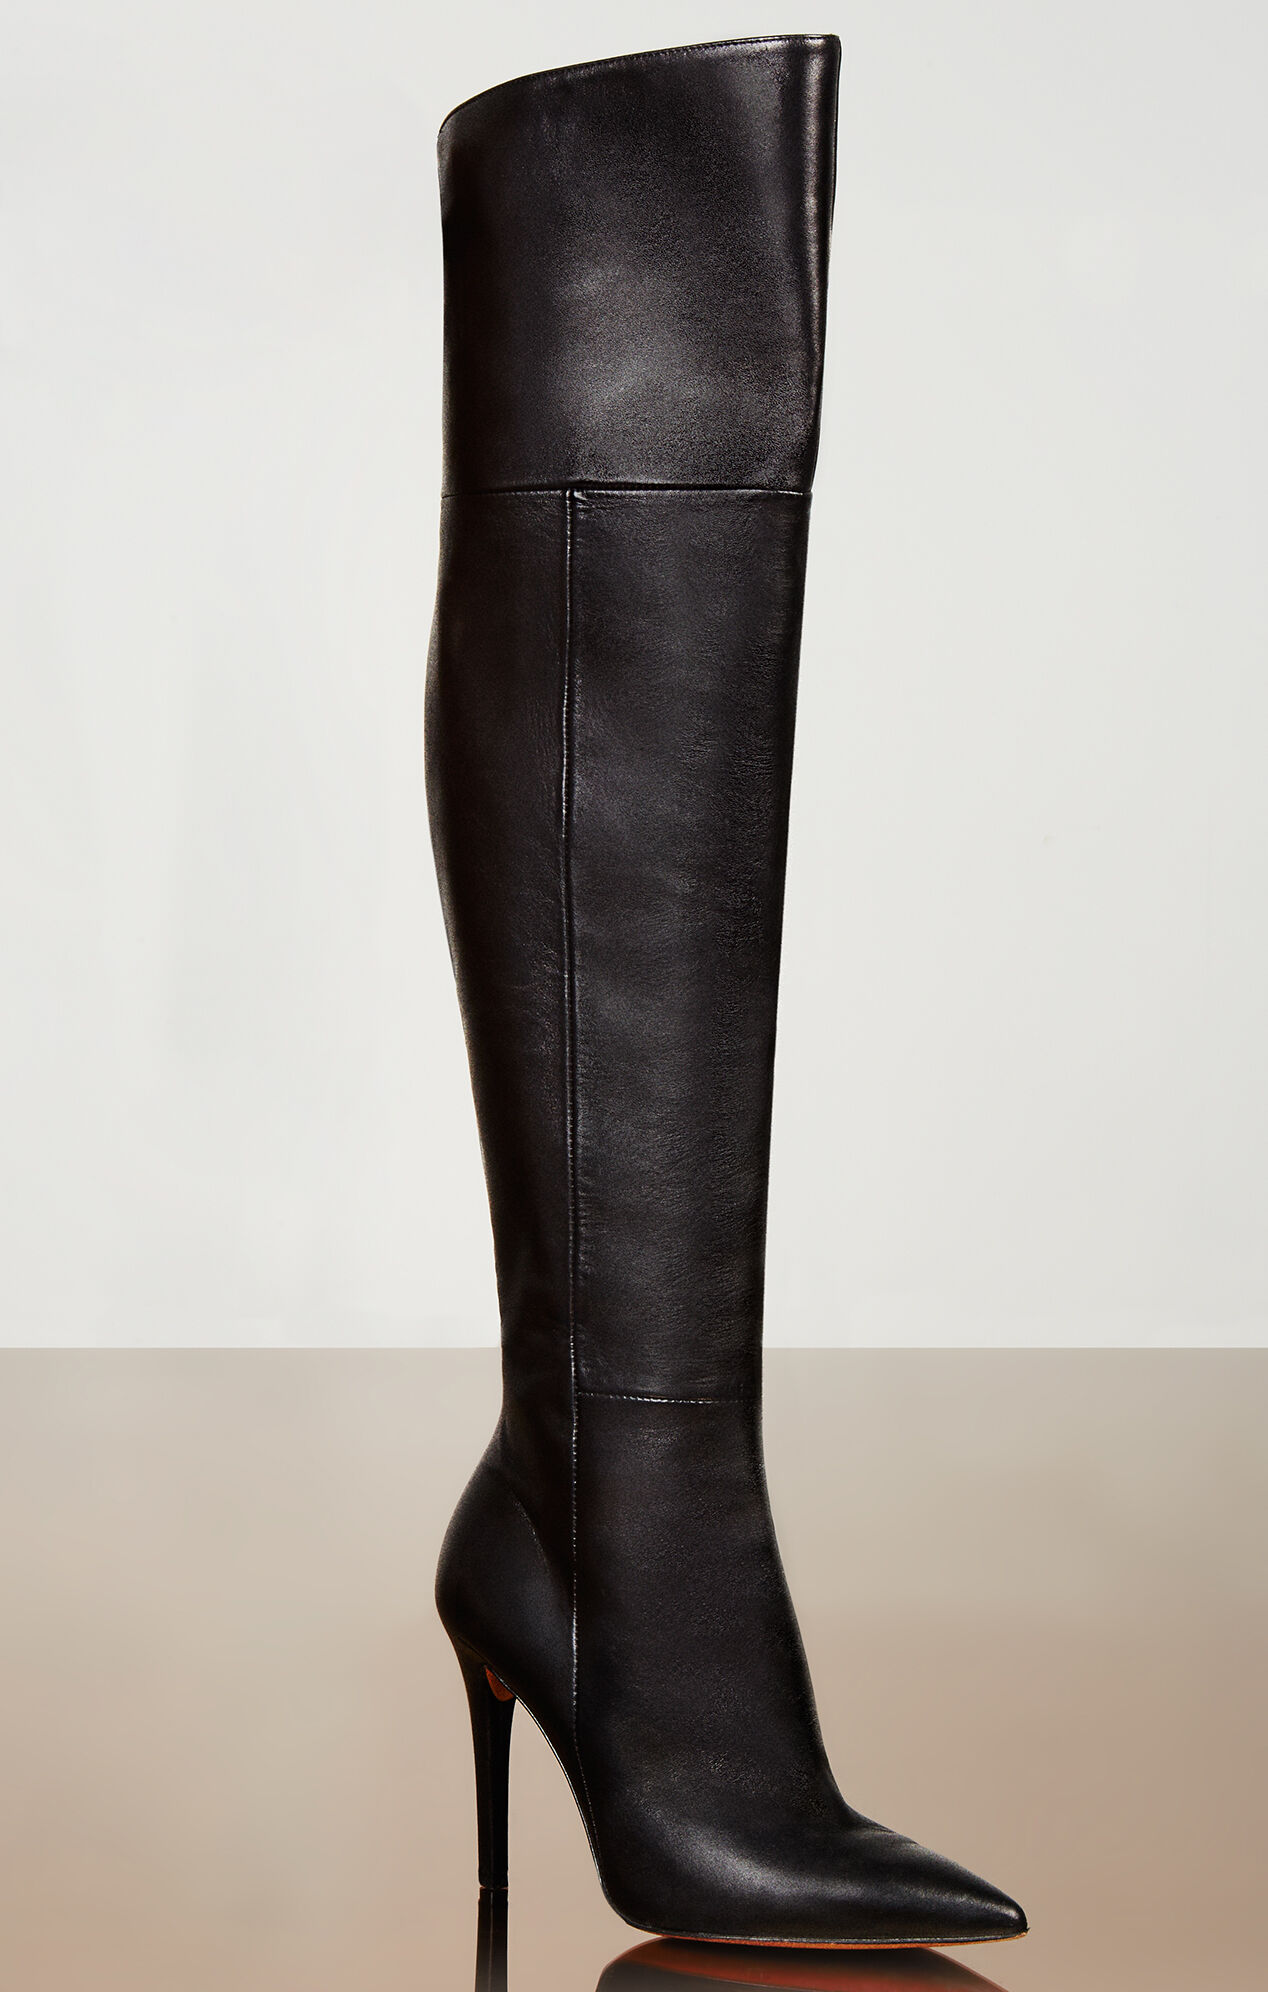 Heeled Knee High Boots. H&M High Heel Boots, $ ingmecanica.ml, The Best High Heeled Boots for Fall. Hit a wardrobe high this season with these on-trend boots that rise above the rest. by.